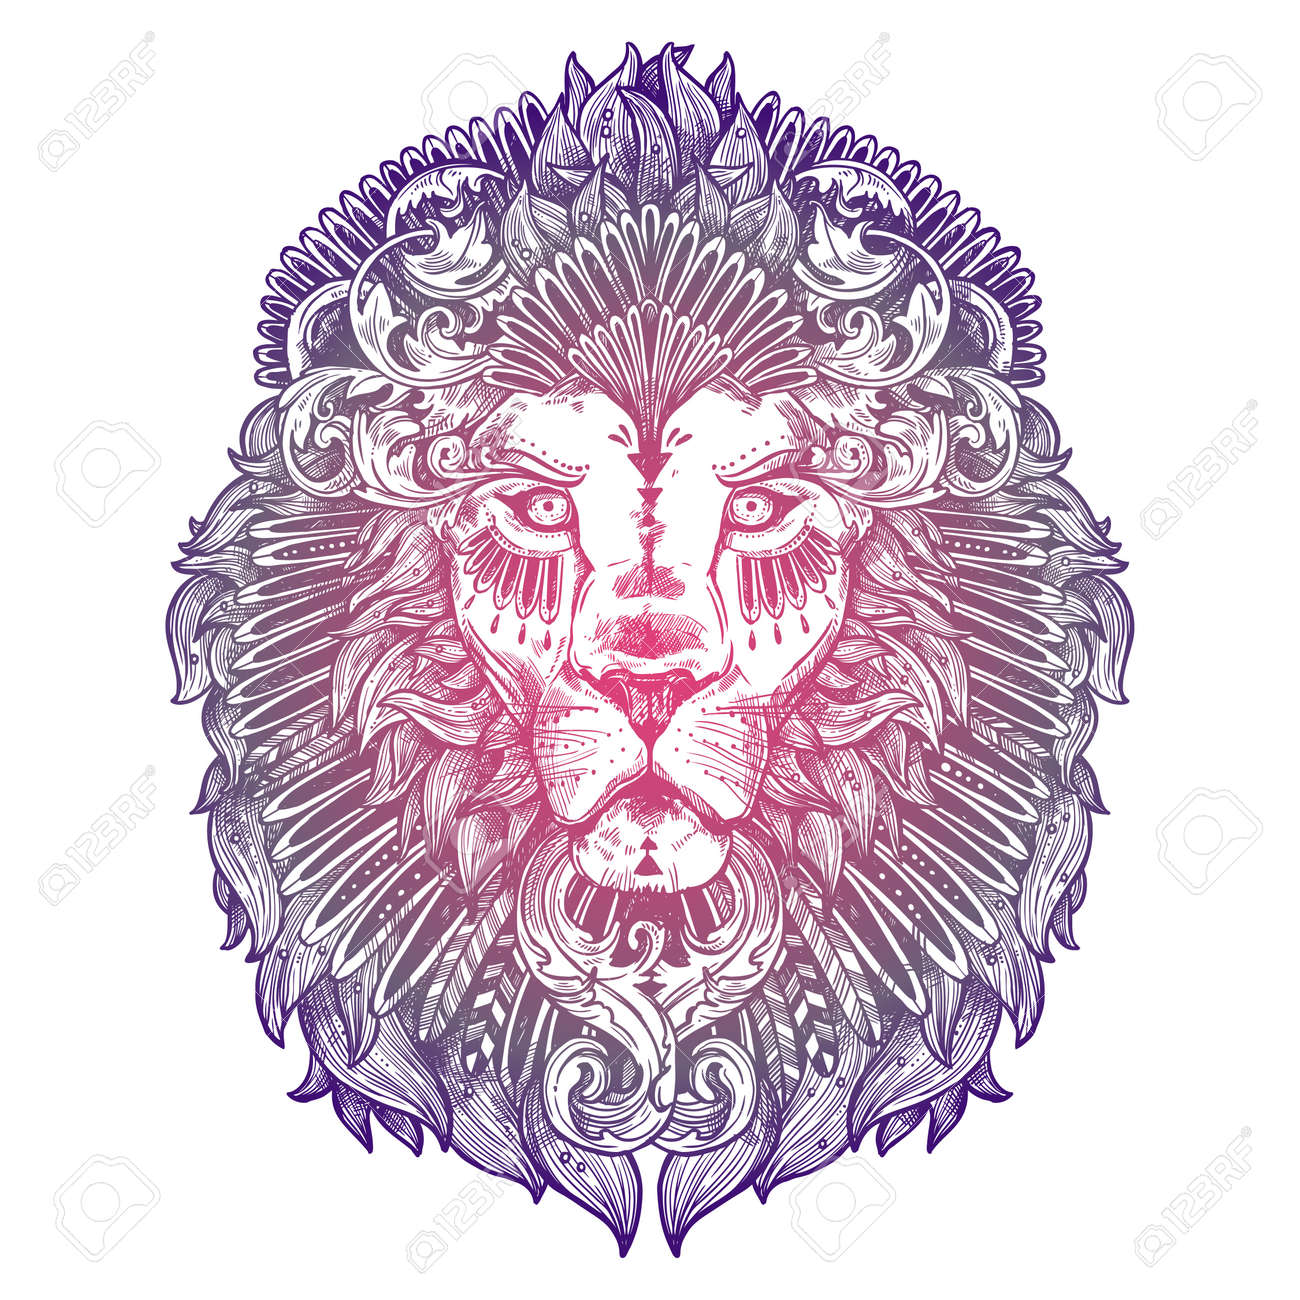 Ornamental Lilac Tattoo Lion Head Highly Detailed Abstract Hand